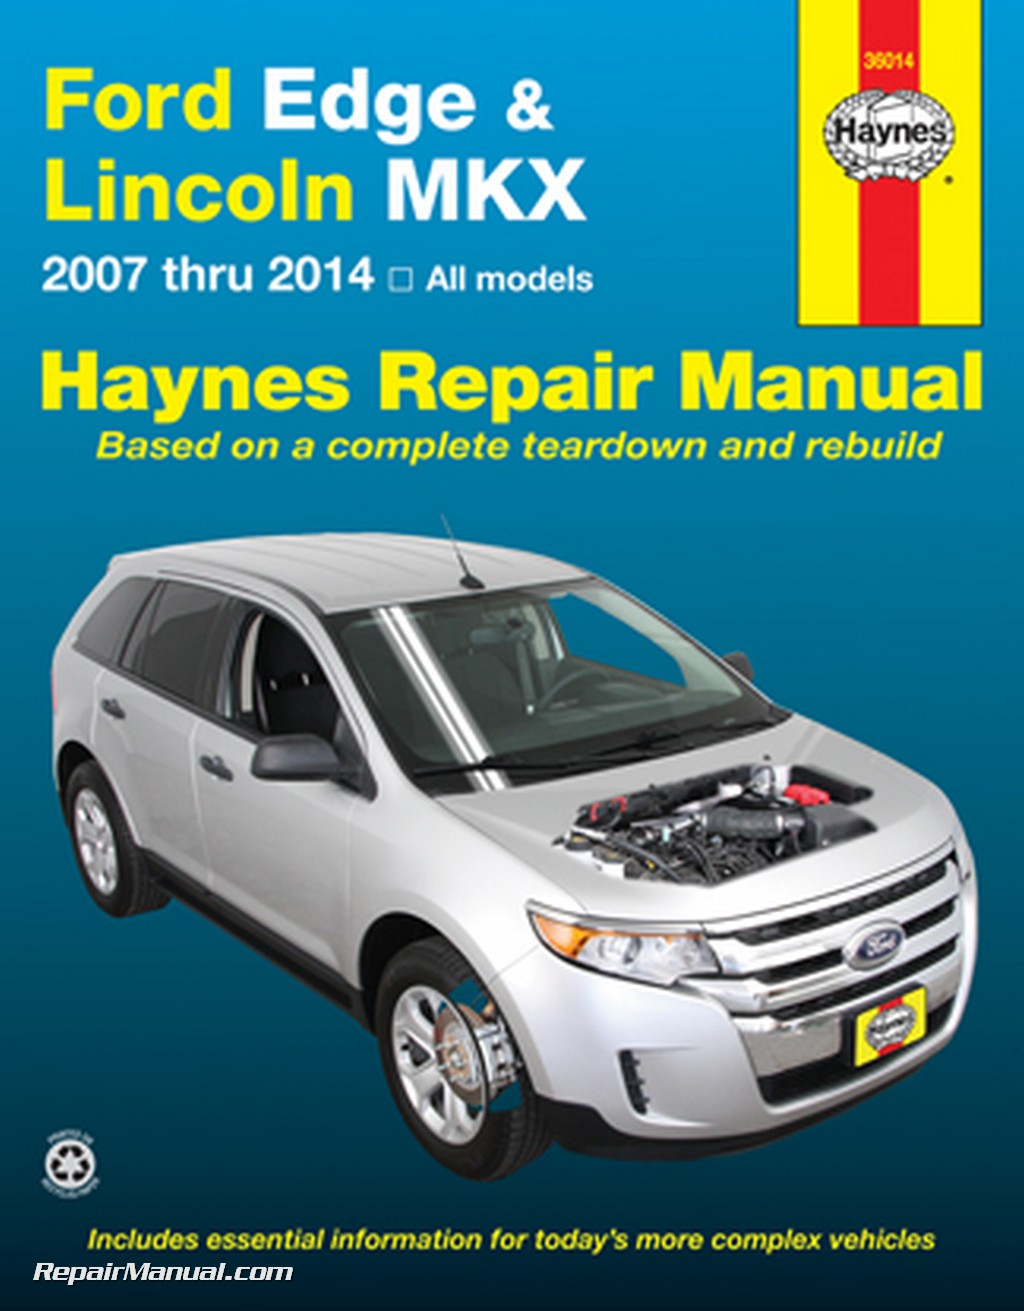 ford edge lincoln mkx haynes repair manual 2007 2014 rh repairmanual com Haynes Manuals UK Haynes Manual Monte Carlo Back